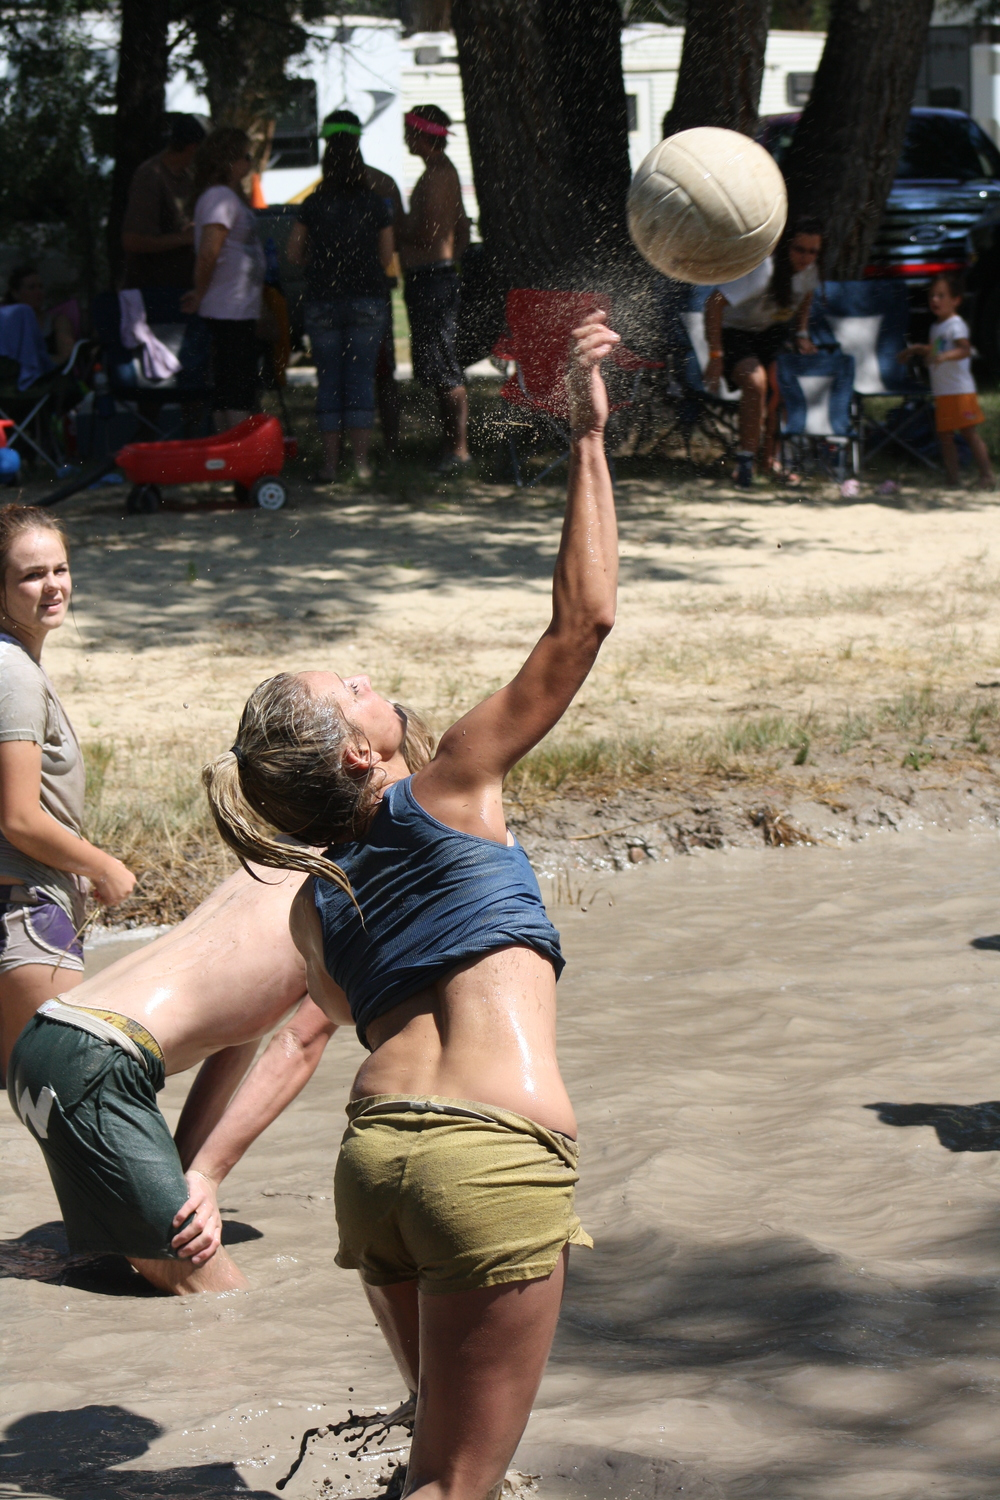 One of the hit's of Deer Creek Days is always the Mud Volleyball Tournament. Get dirty or just watch the fun, but check it  out.